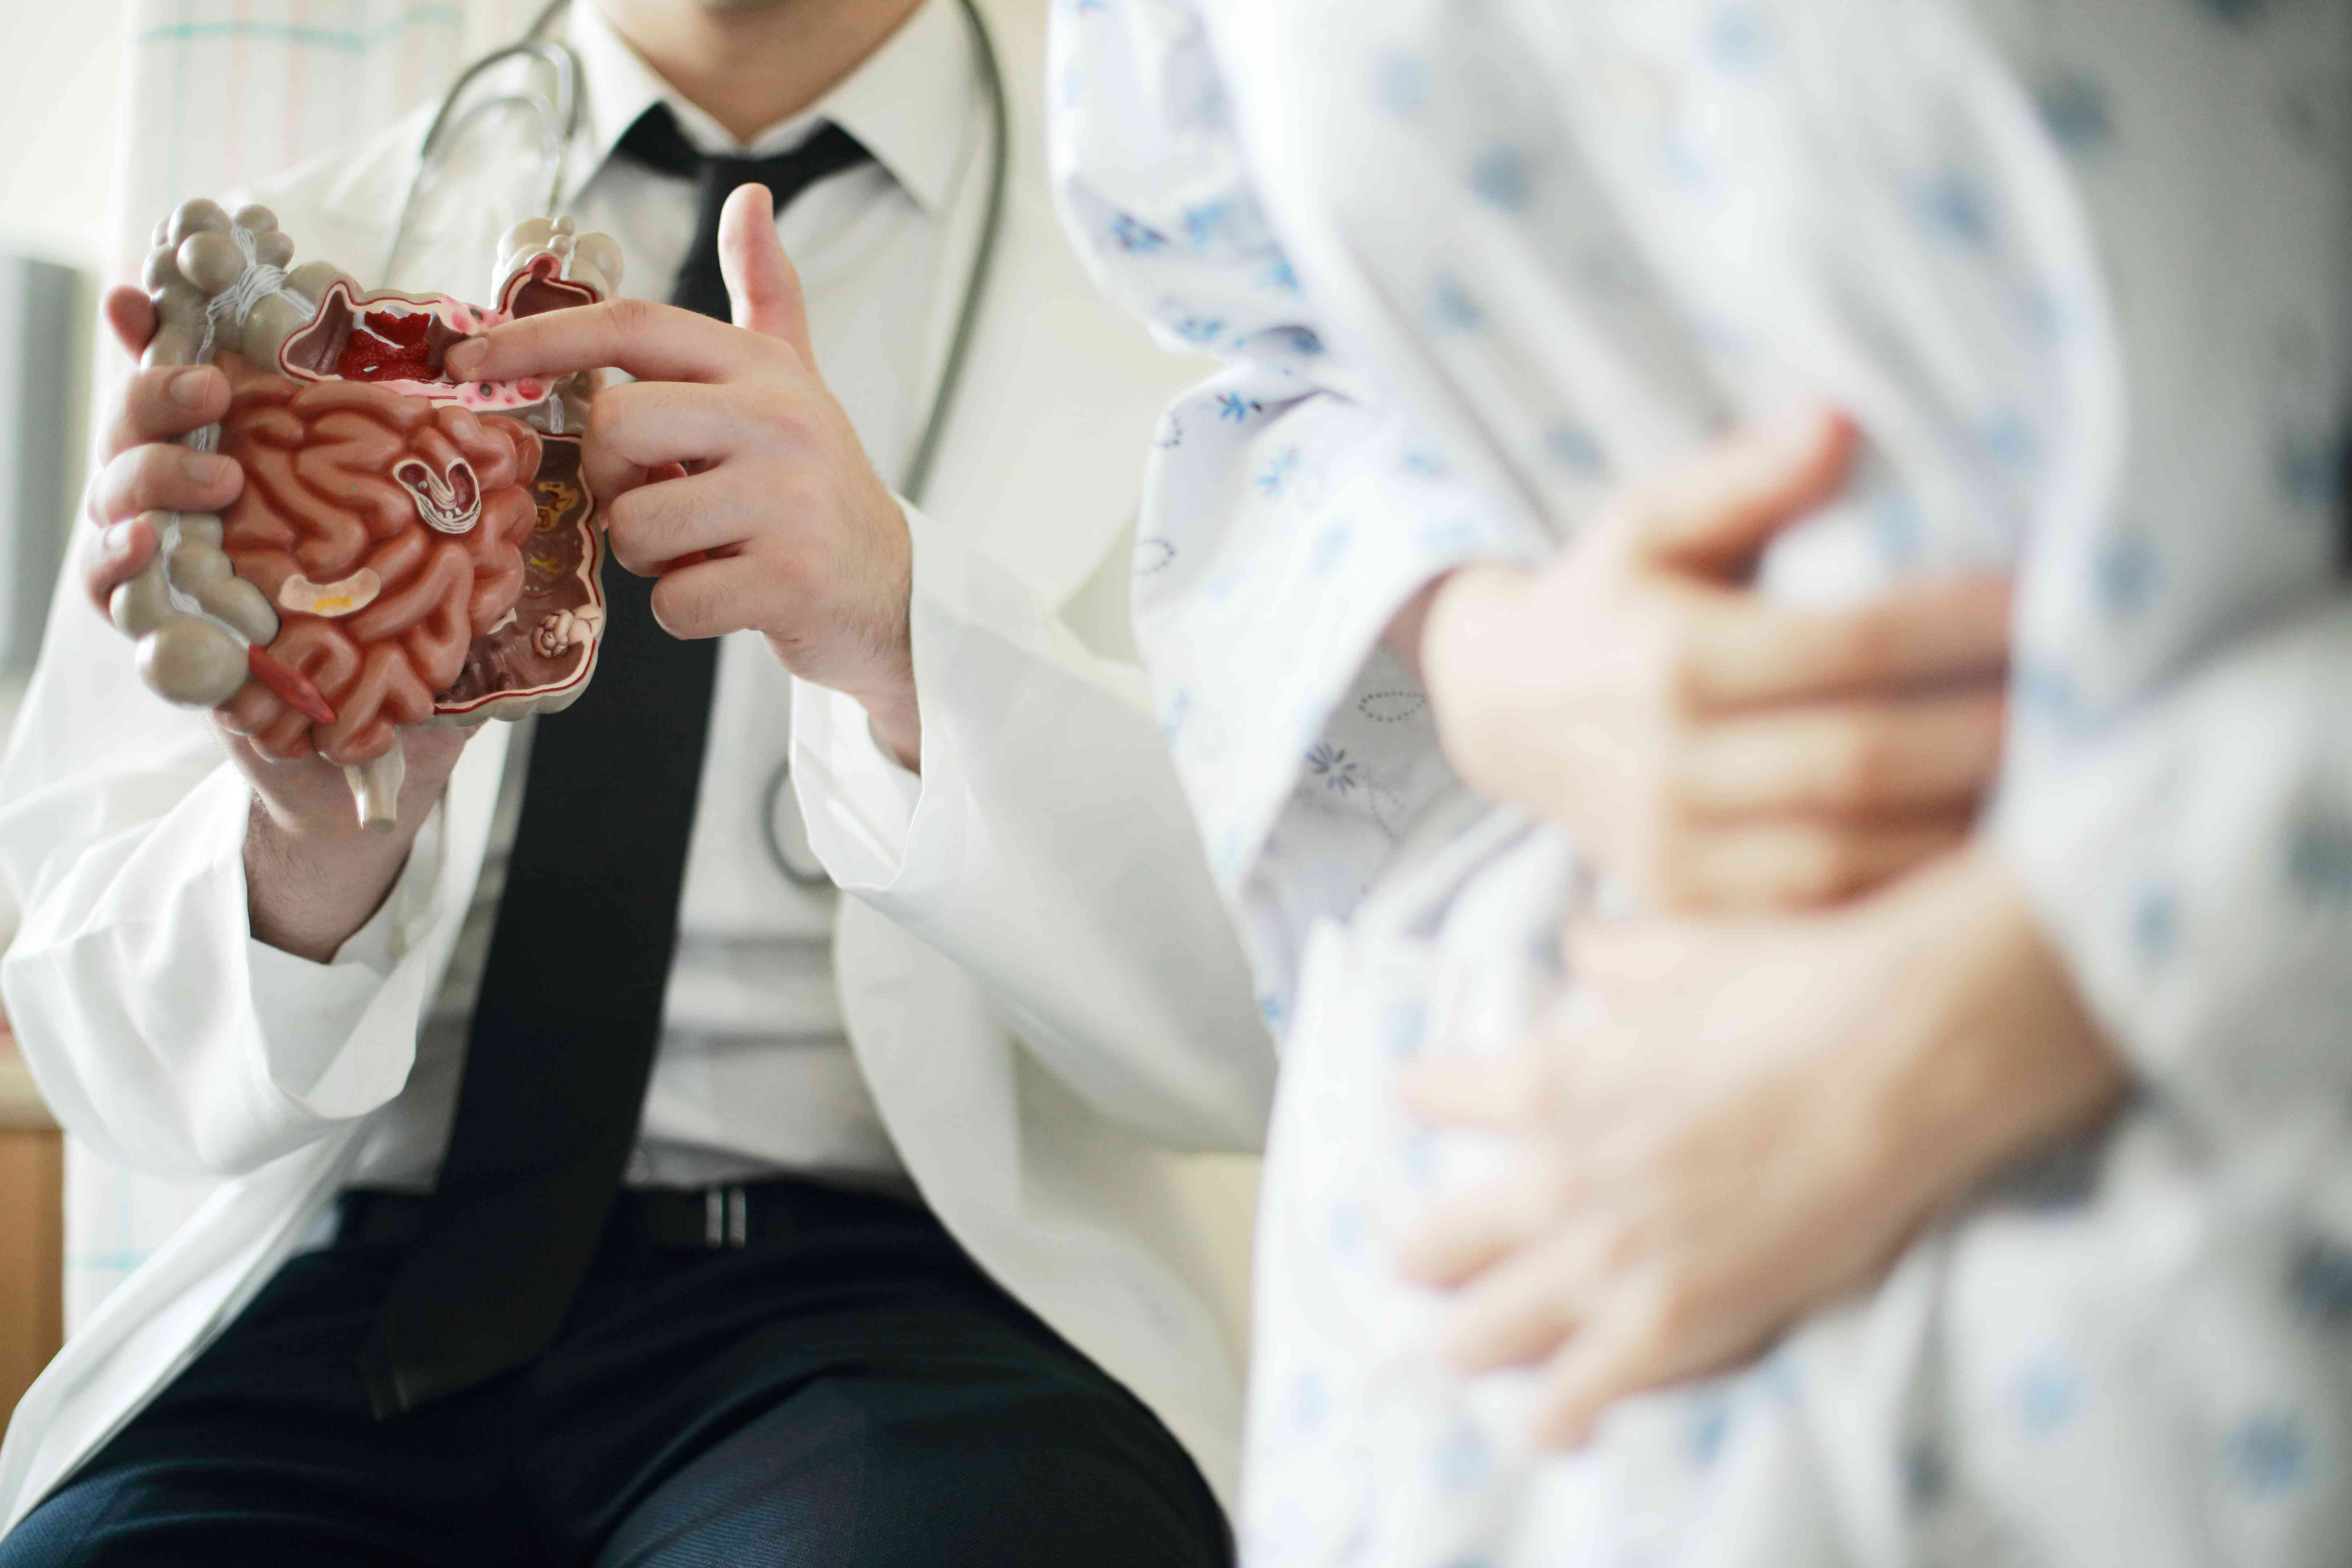 Doctor showing intestine model to patient in office